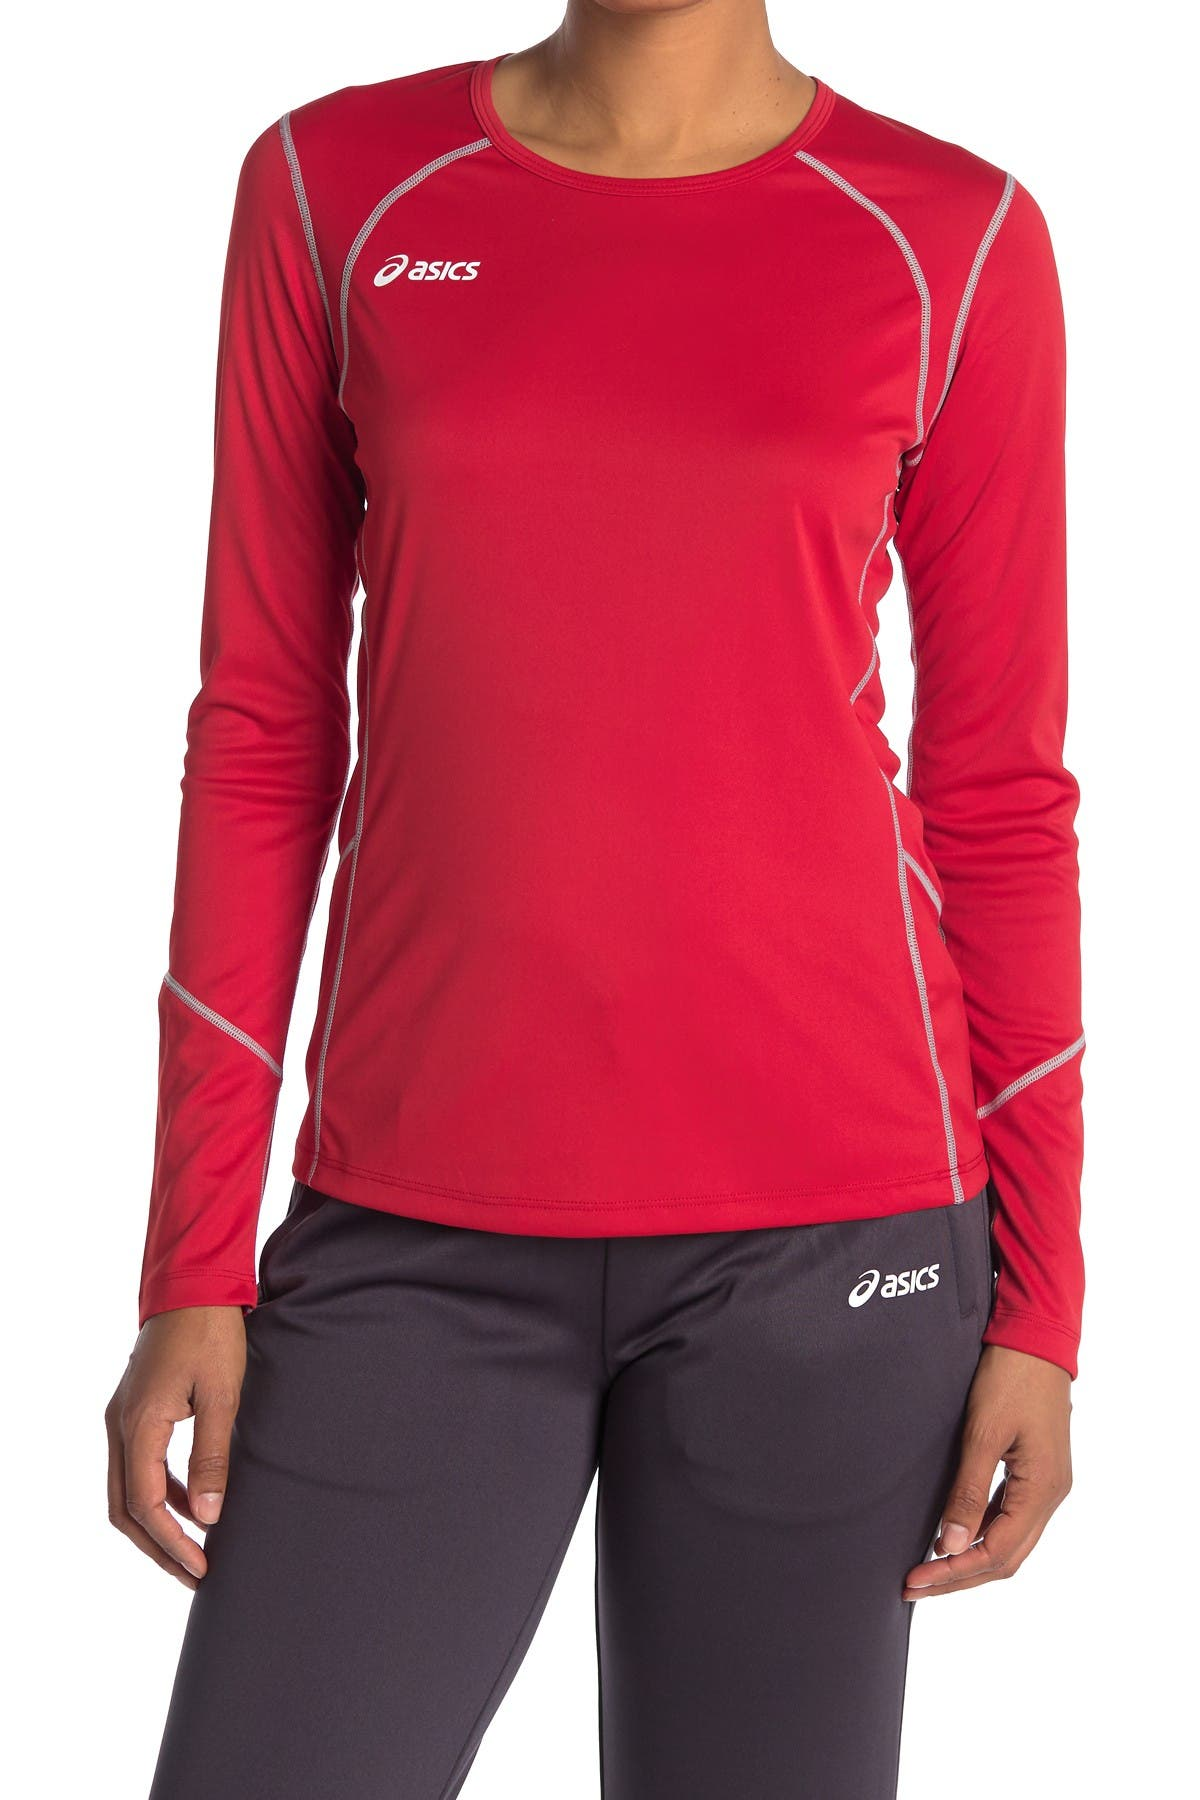 Image of ASICS Volleycross Long Sleeve Jersey